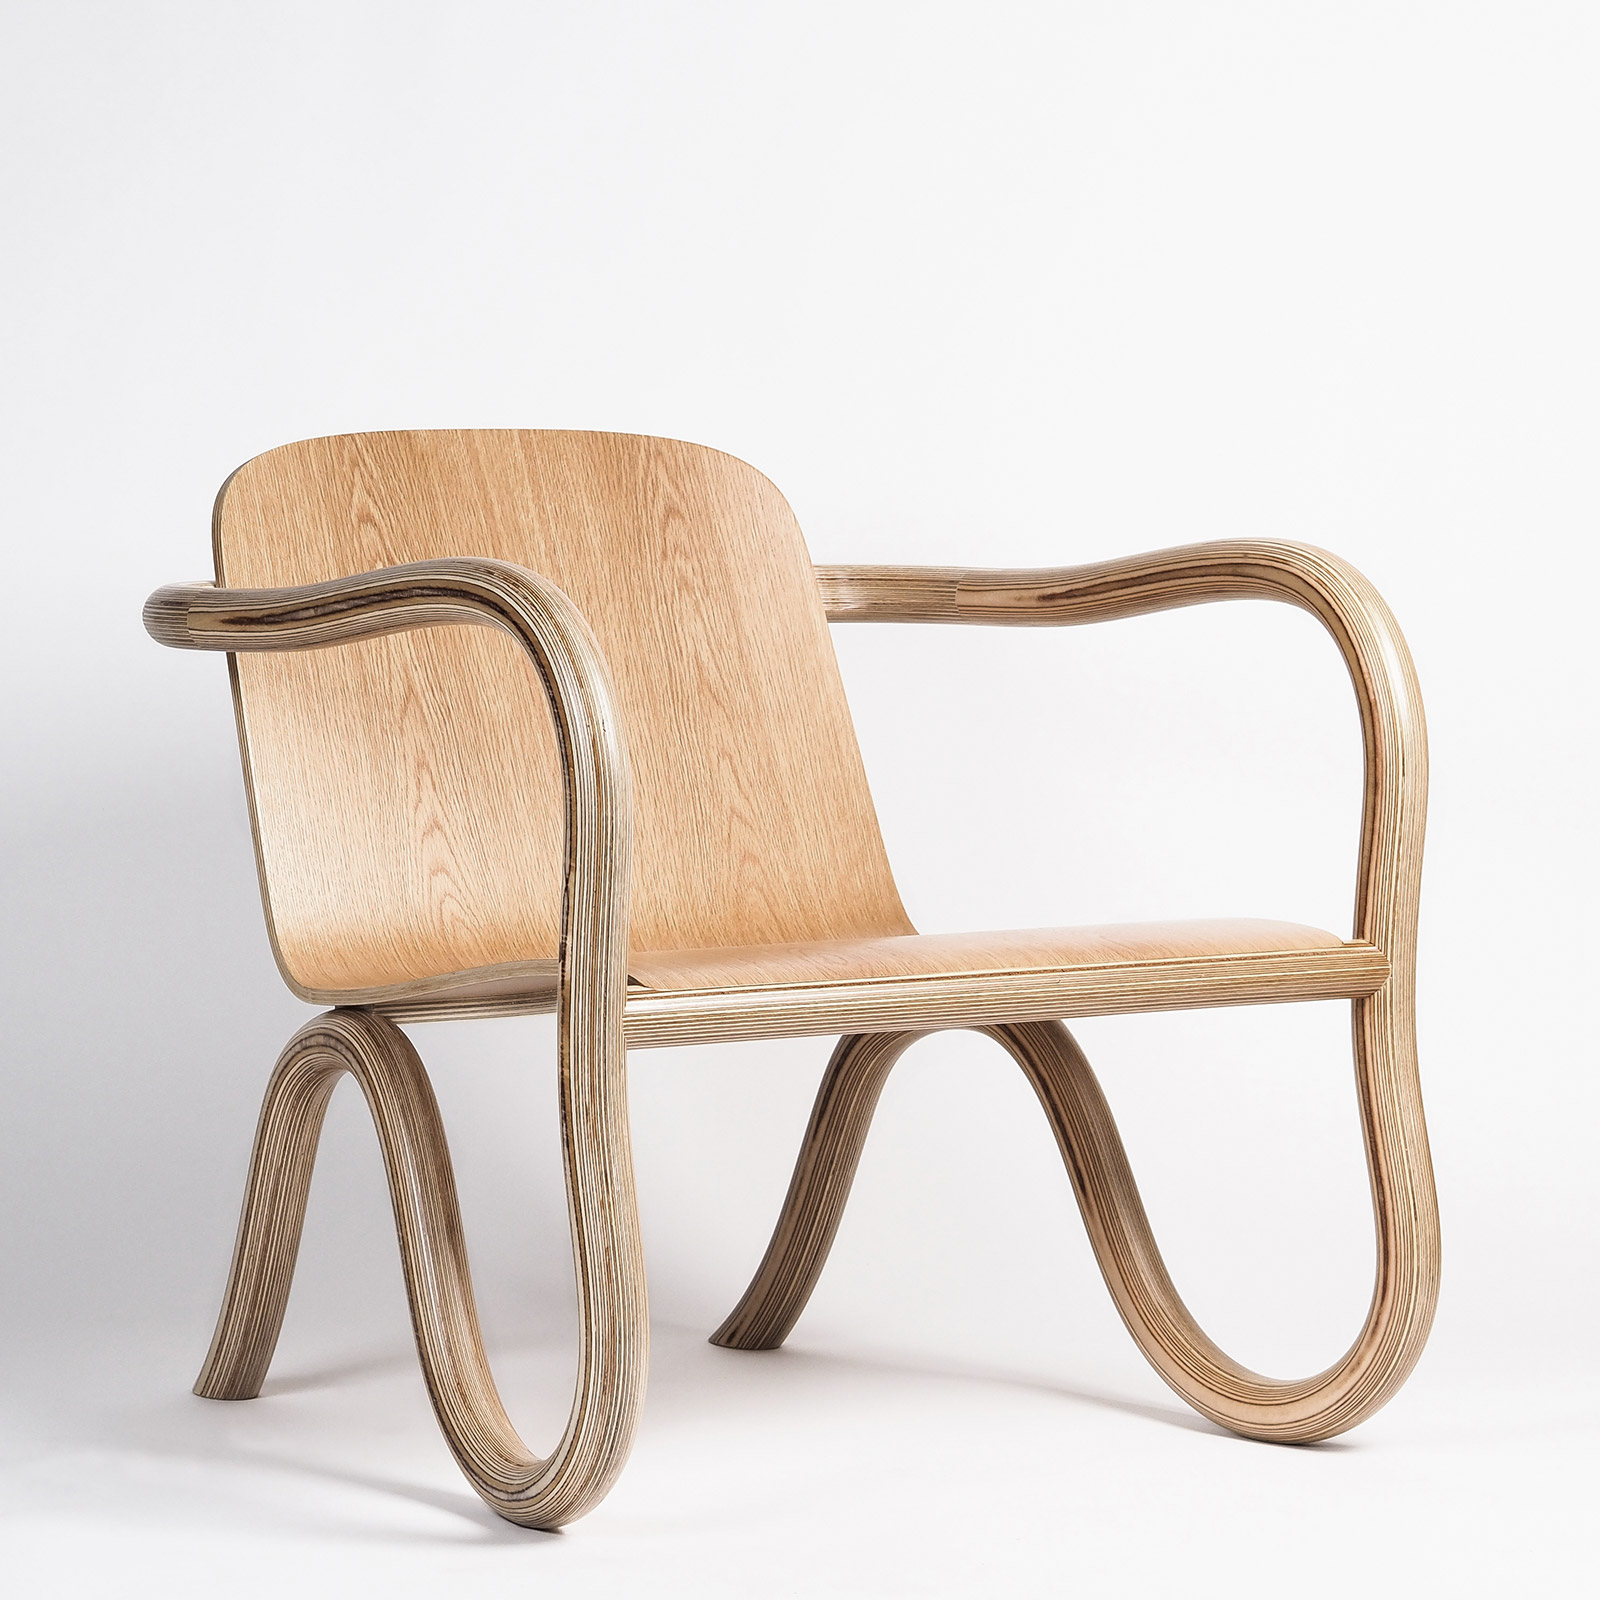 Moulded oak plywood lounge chair